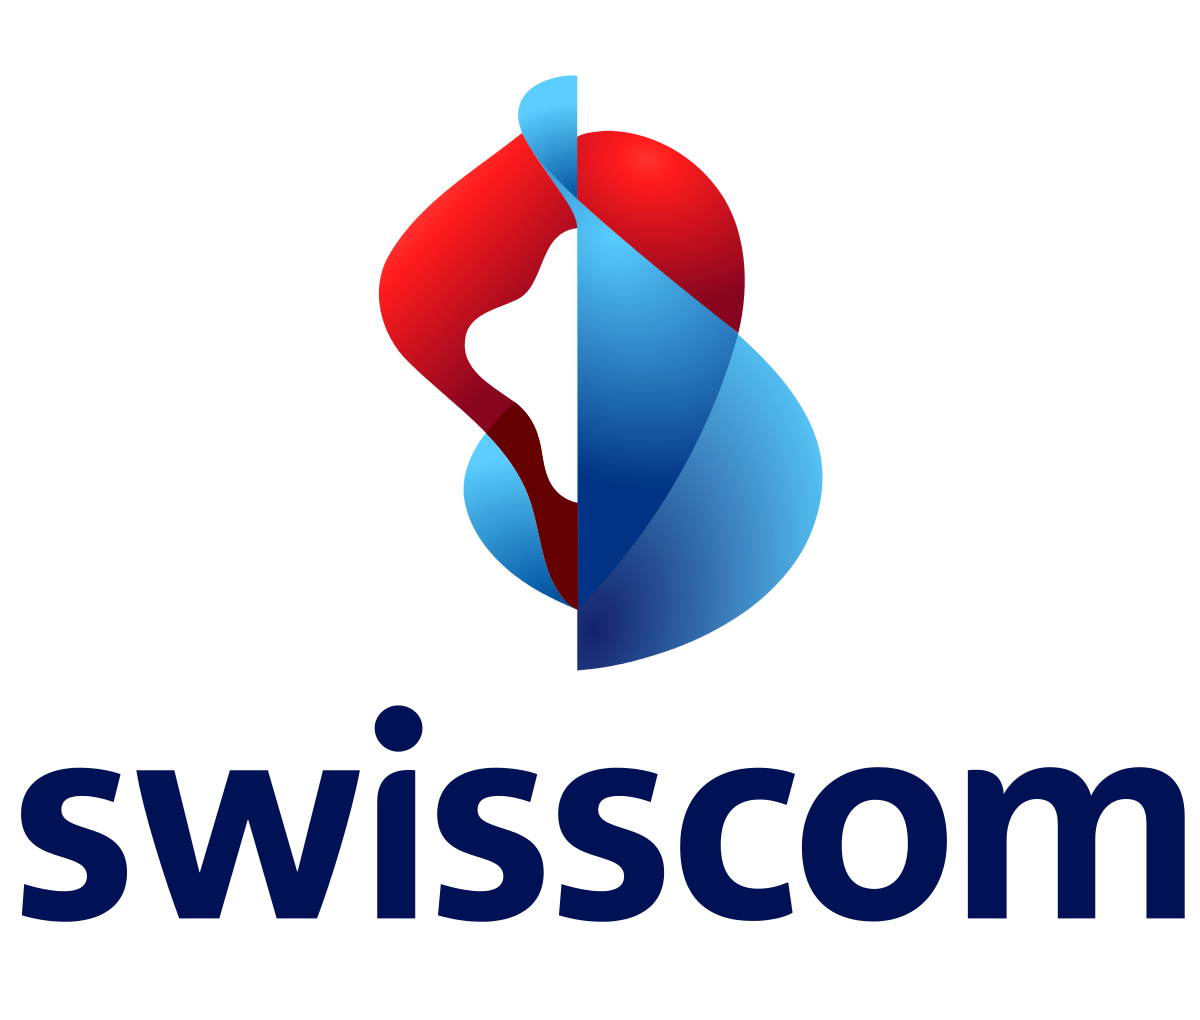 Swisscom-logo-and-wordmark